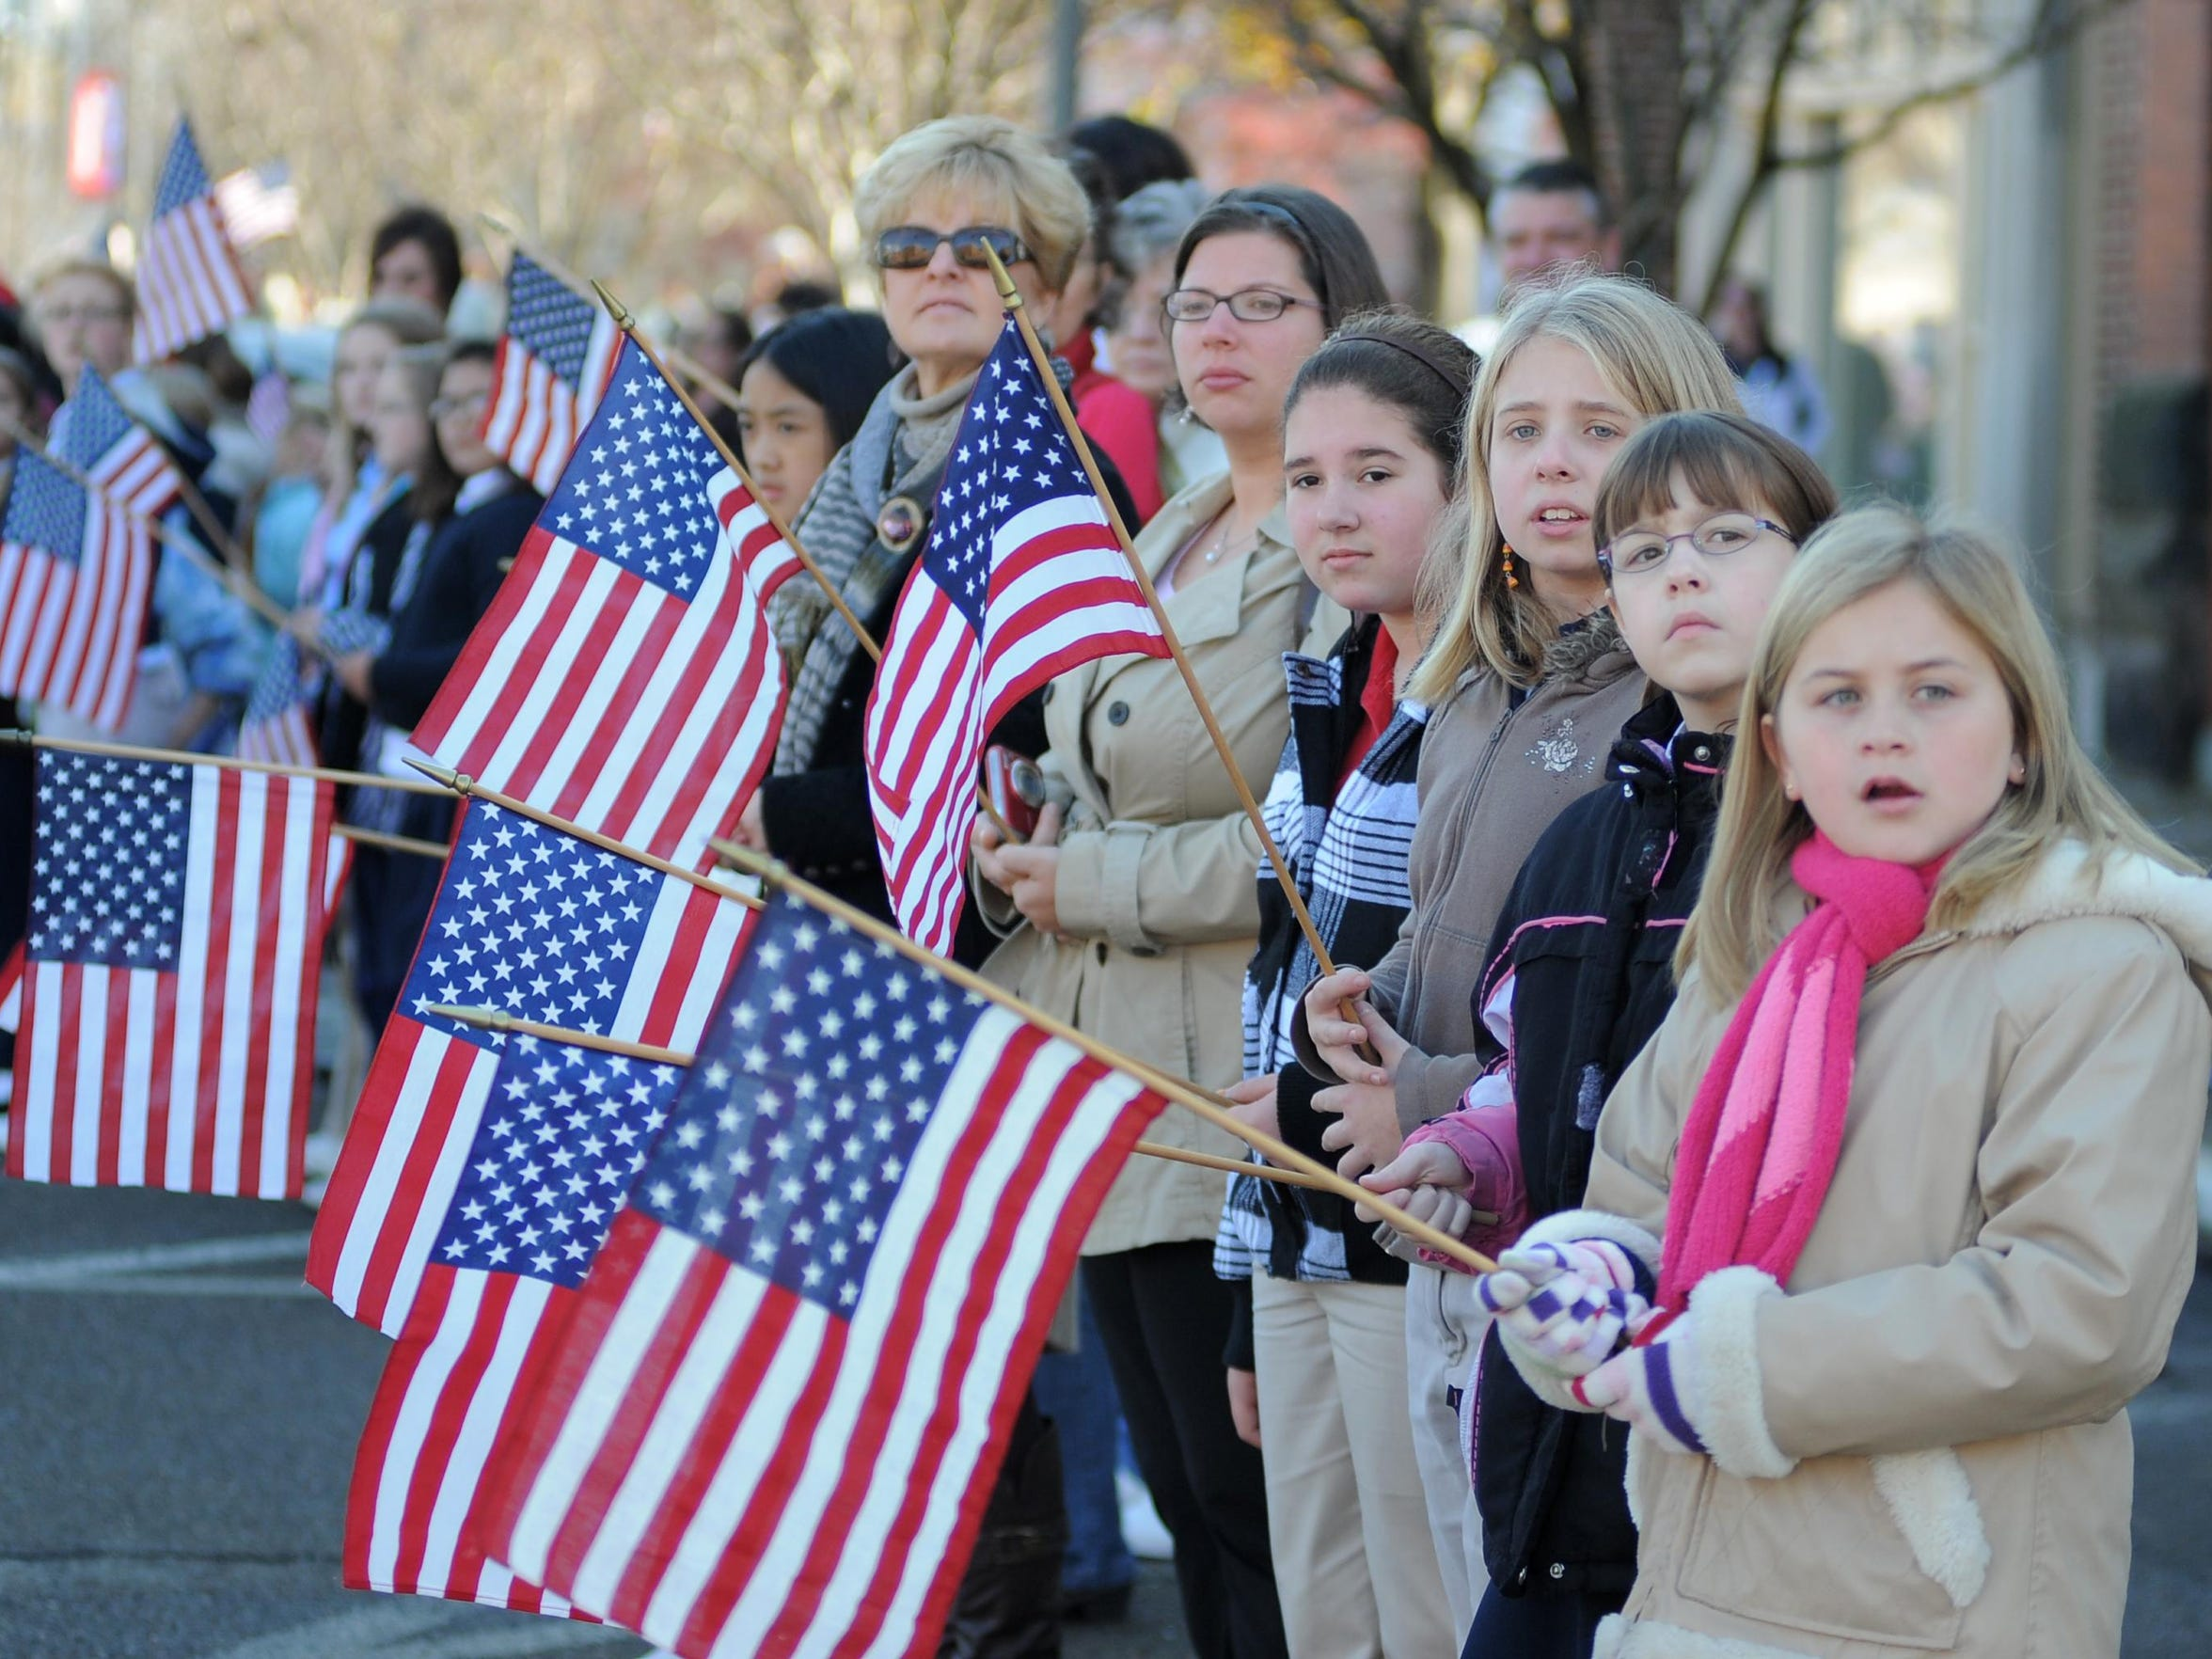 Students from Sacred Heart School stand along Main Street in Coshocton with flags awaiting the arrival of CPO Ray Border's motorcade in this November 2011 file photo.